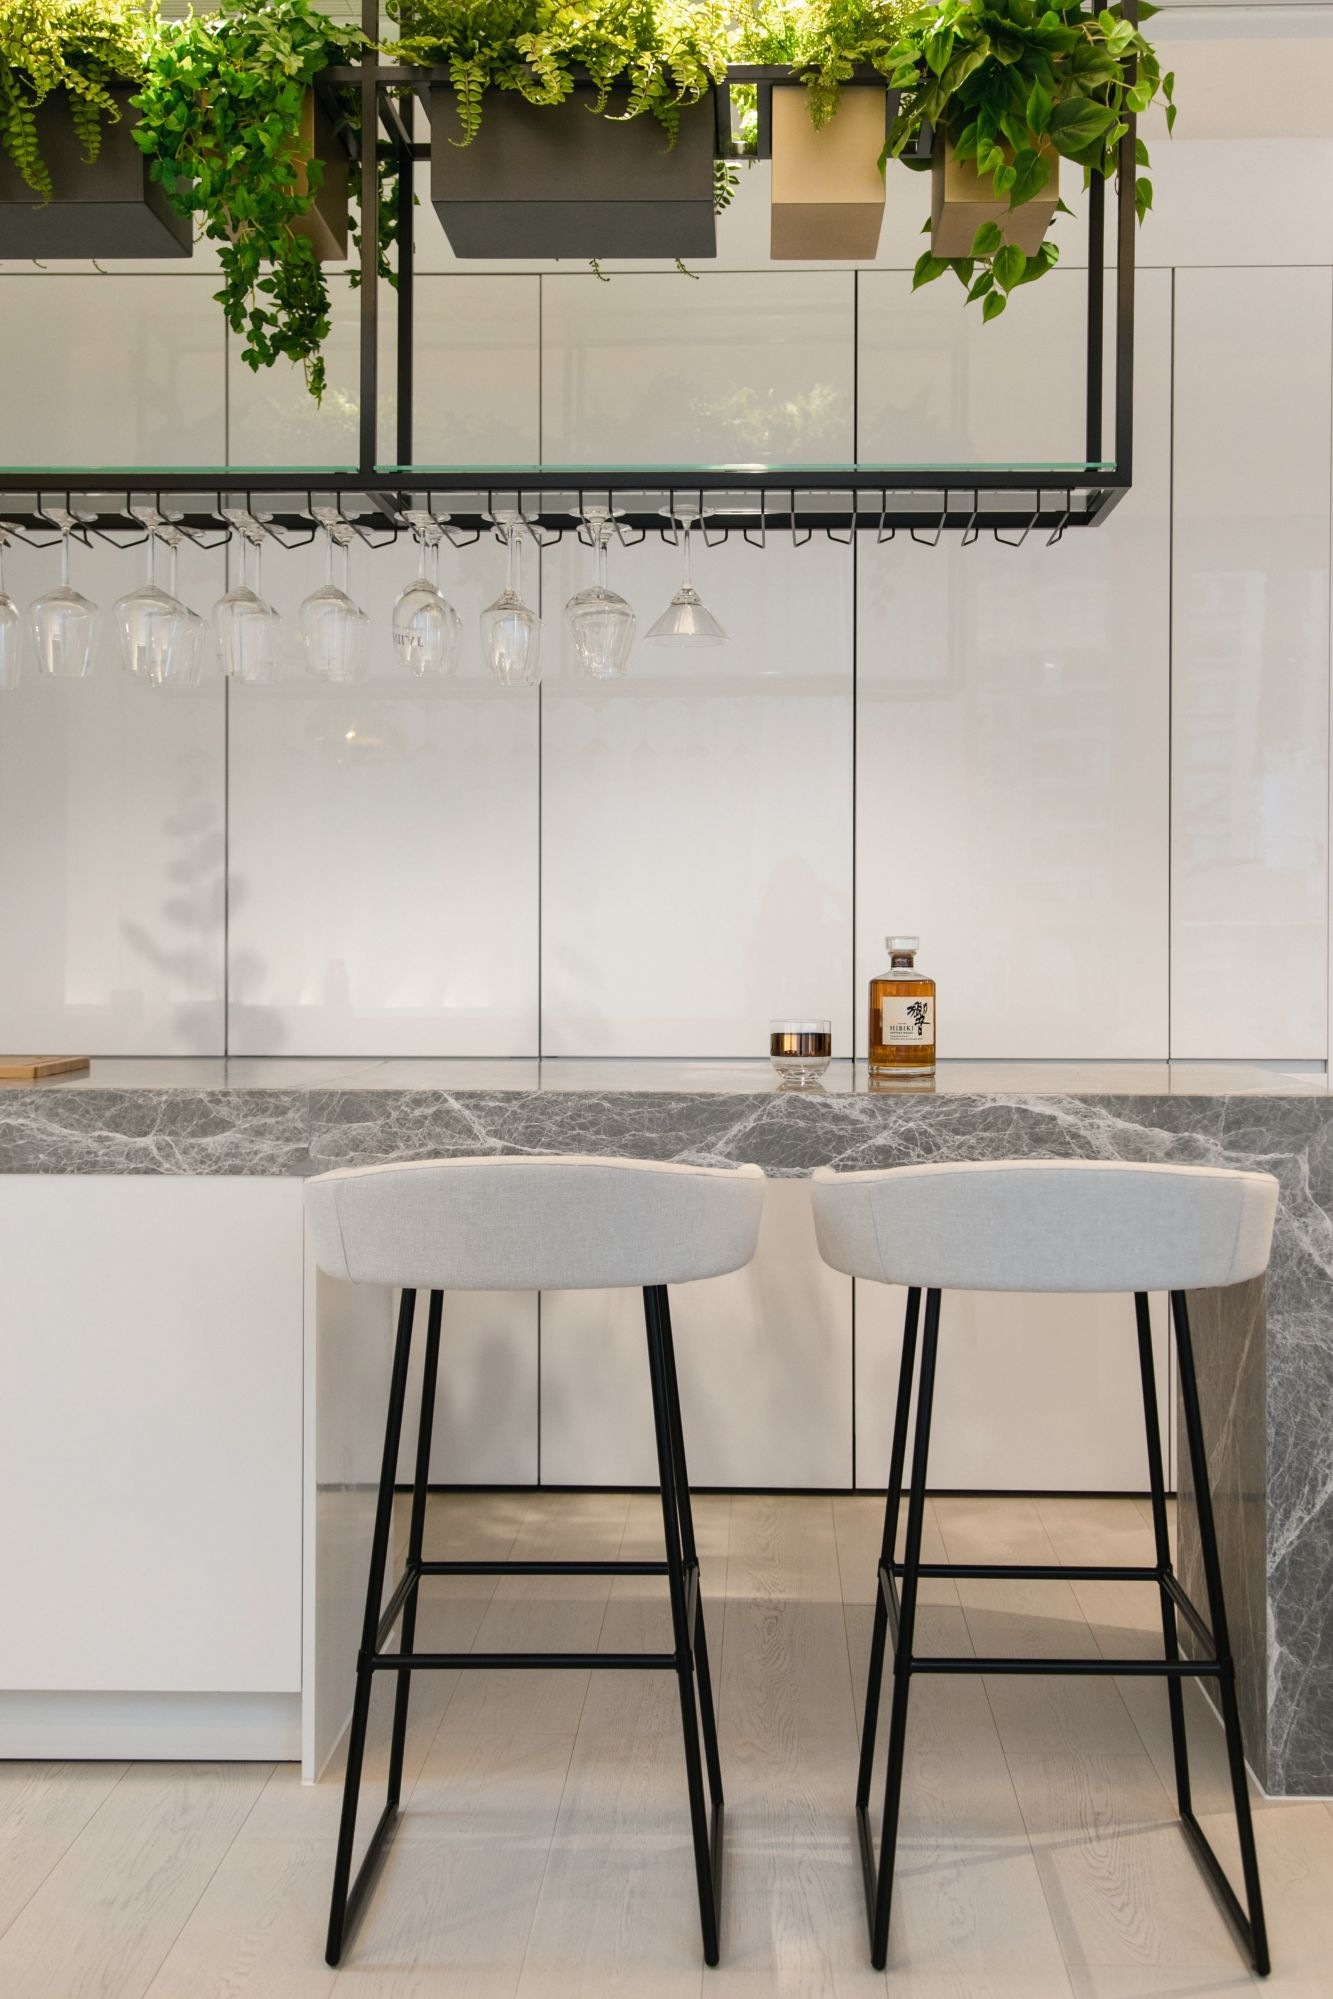 Project designed by Liquid Interiors